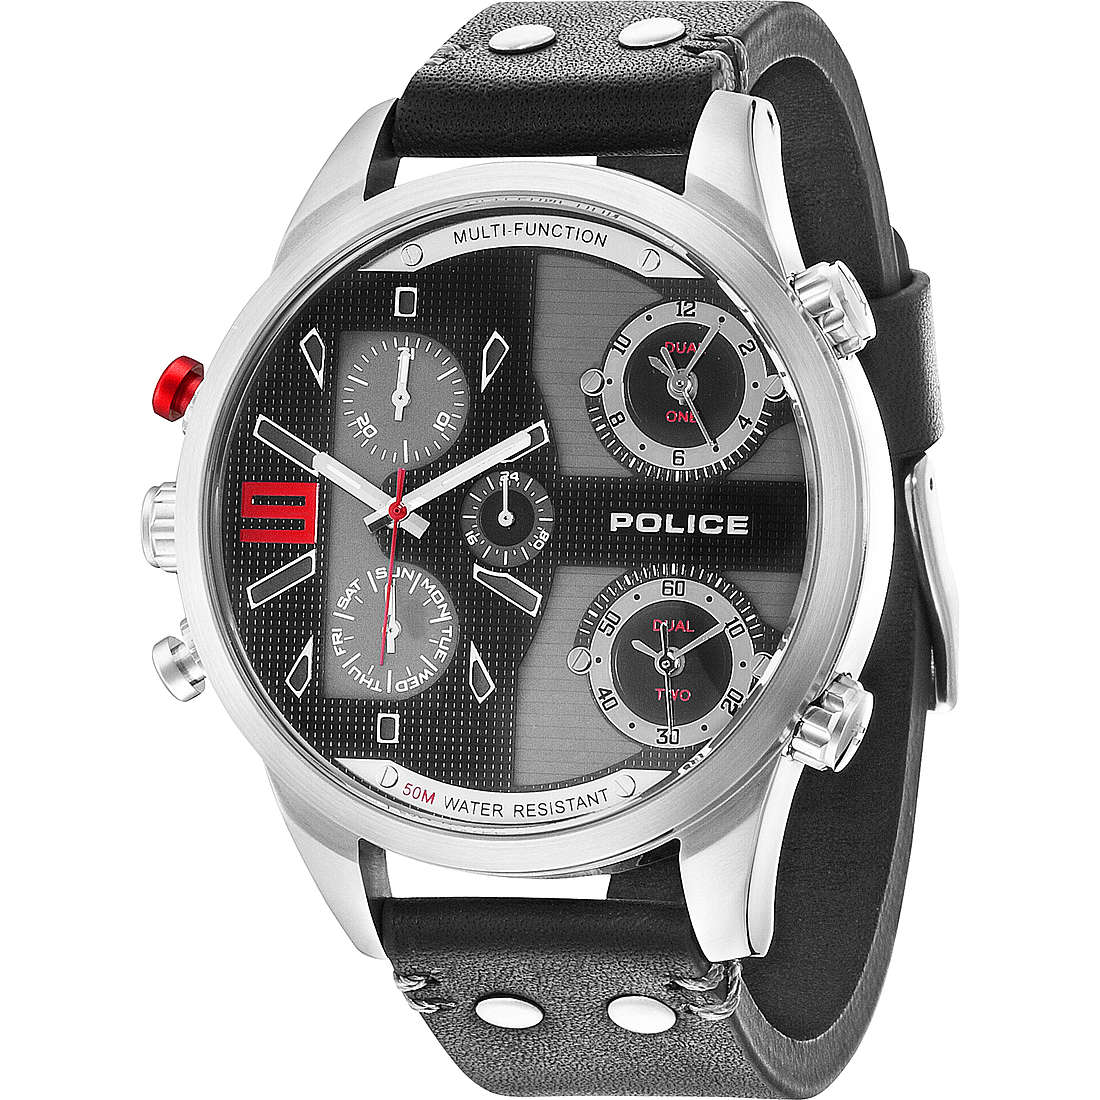 montre multifonction homme Police Copperhead R1451240001